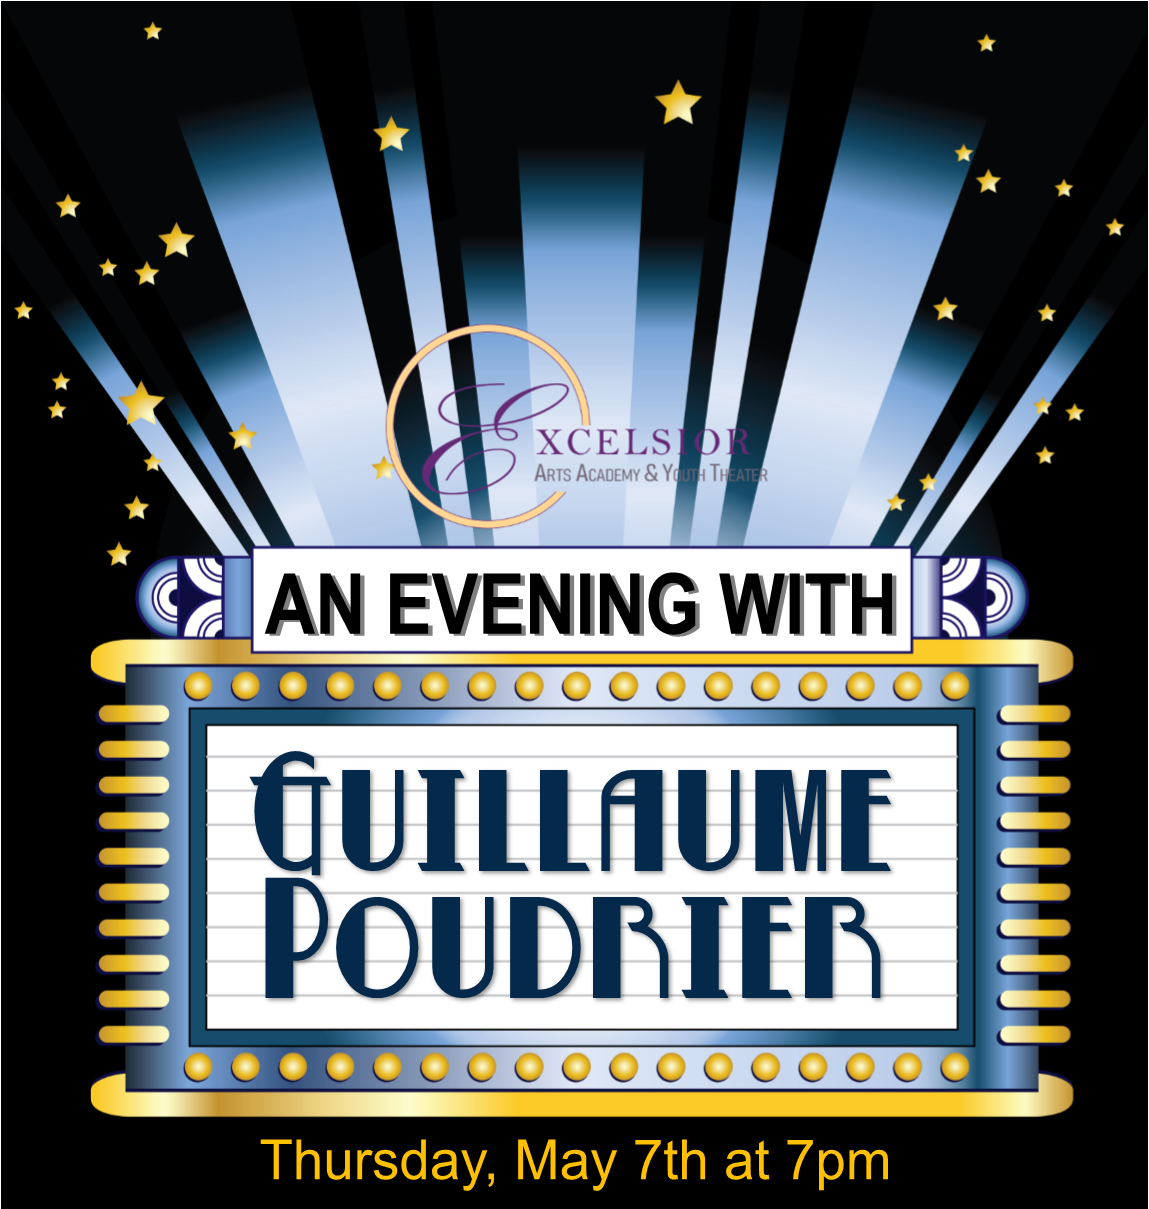 An Evening With G Poudrier